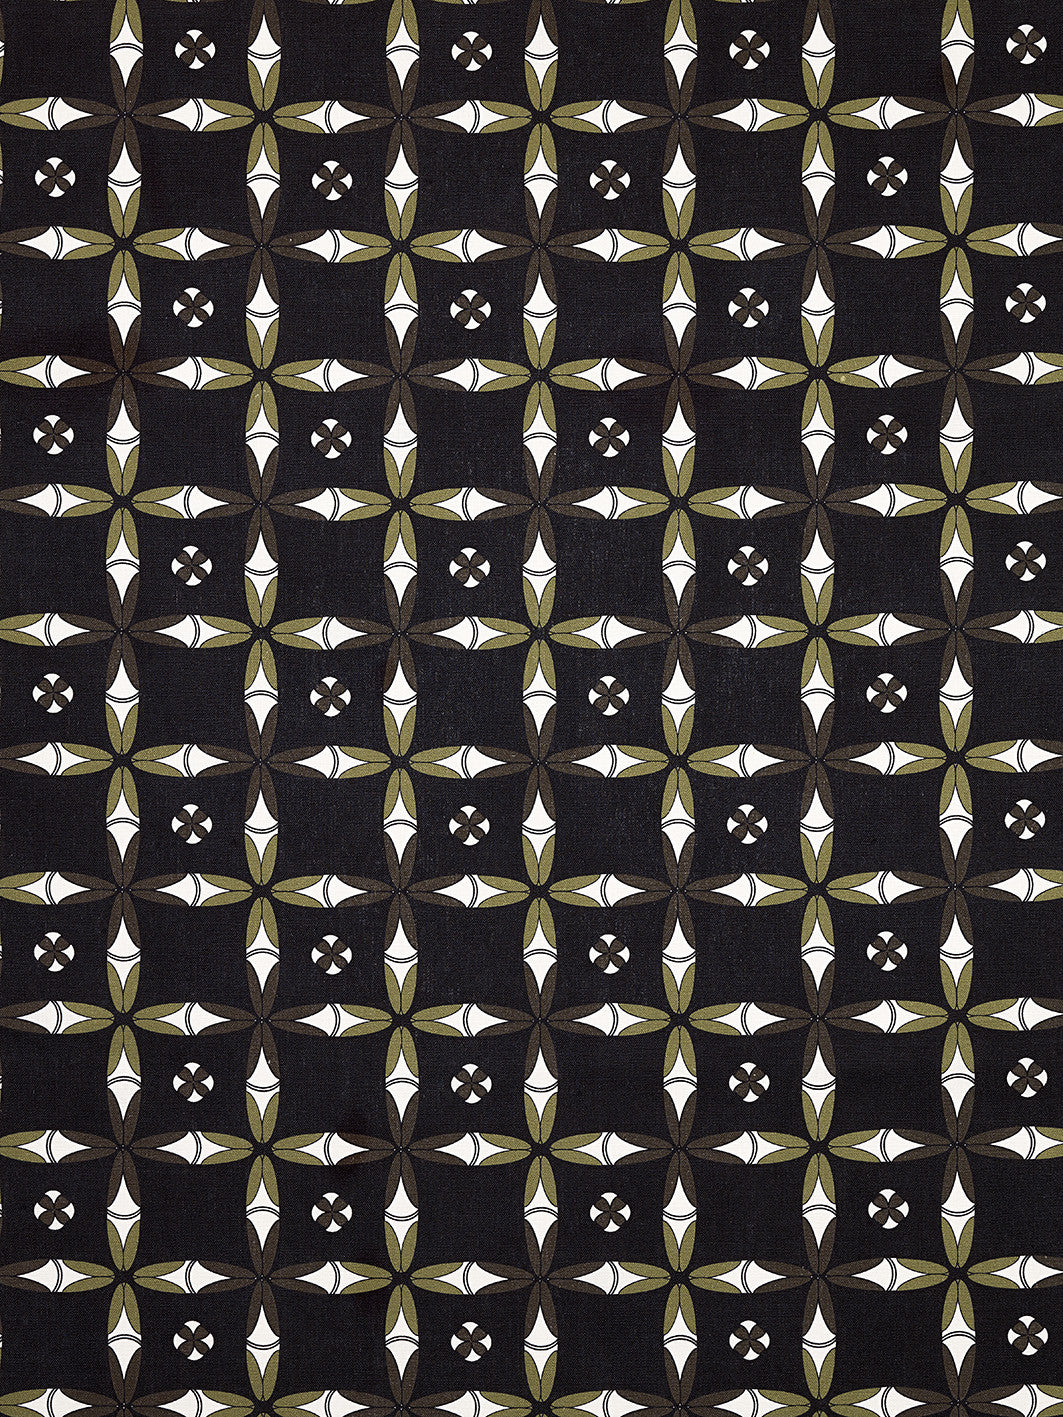 Navajo Ethnic Geometric Pattern Cotton Linen Fabric - Black